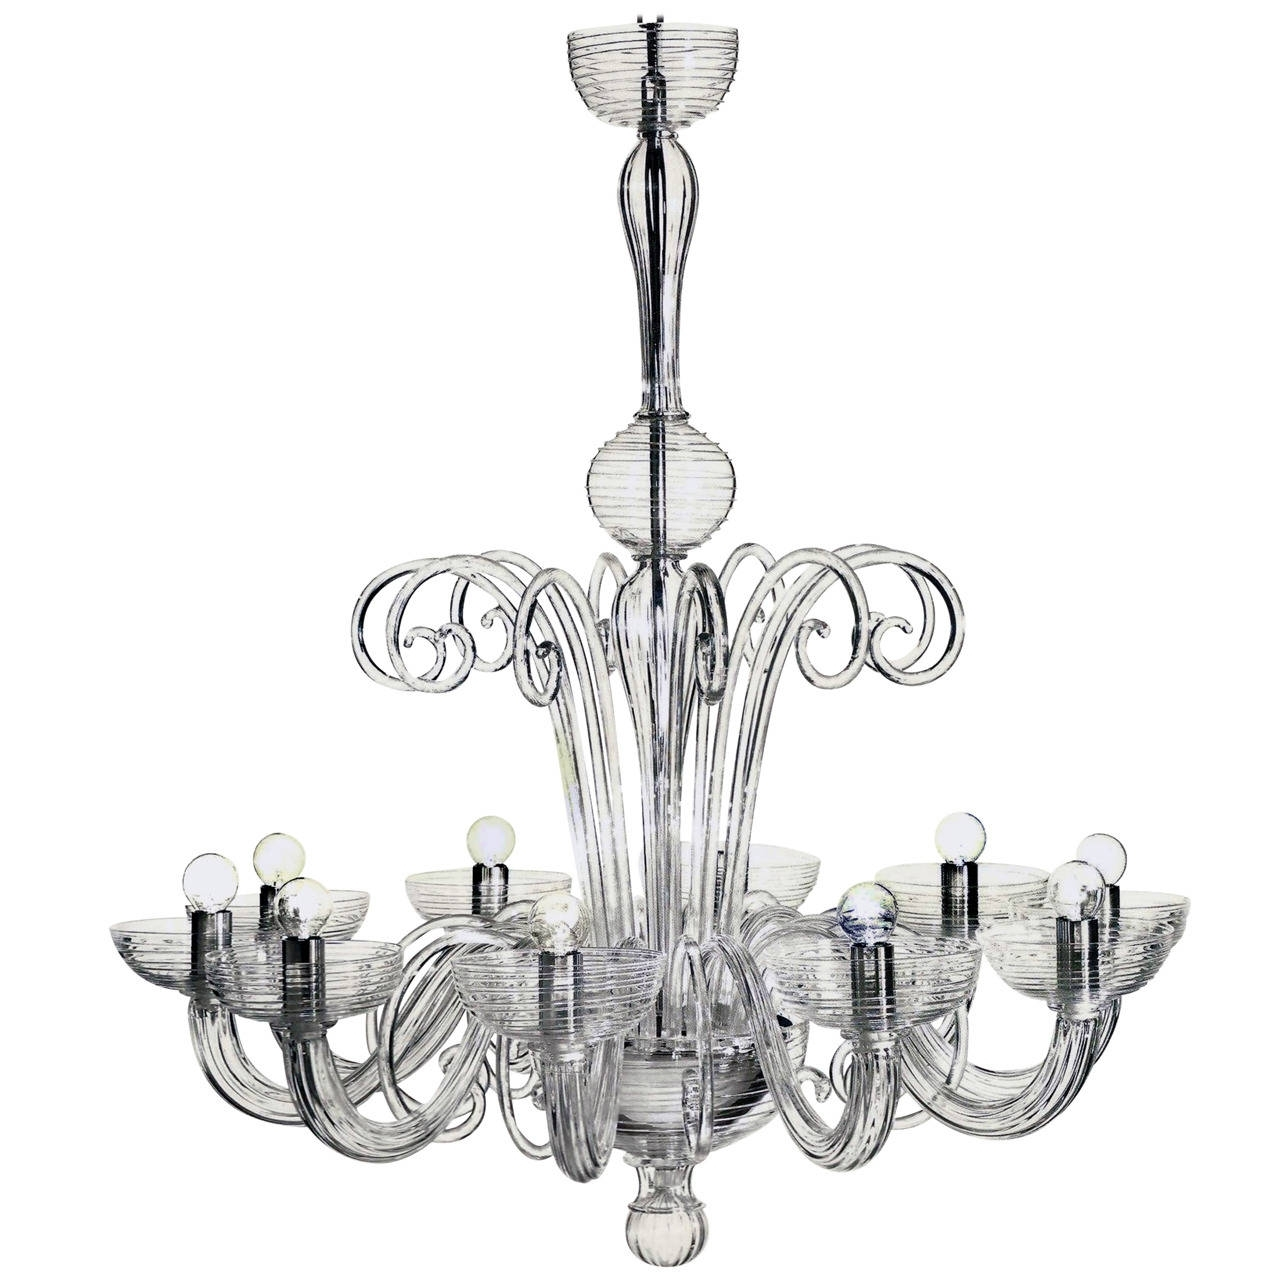 Favorite Two Italian Mid Century Style Clear Murano / Venetian Glass Ten Arm Pertaining To Italian Chandeliers Style (View 9 of 15)